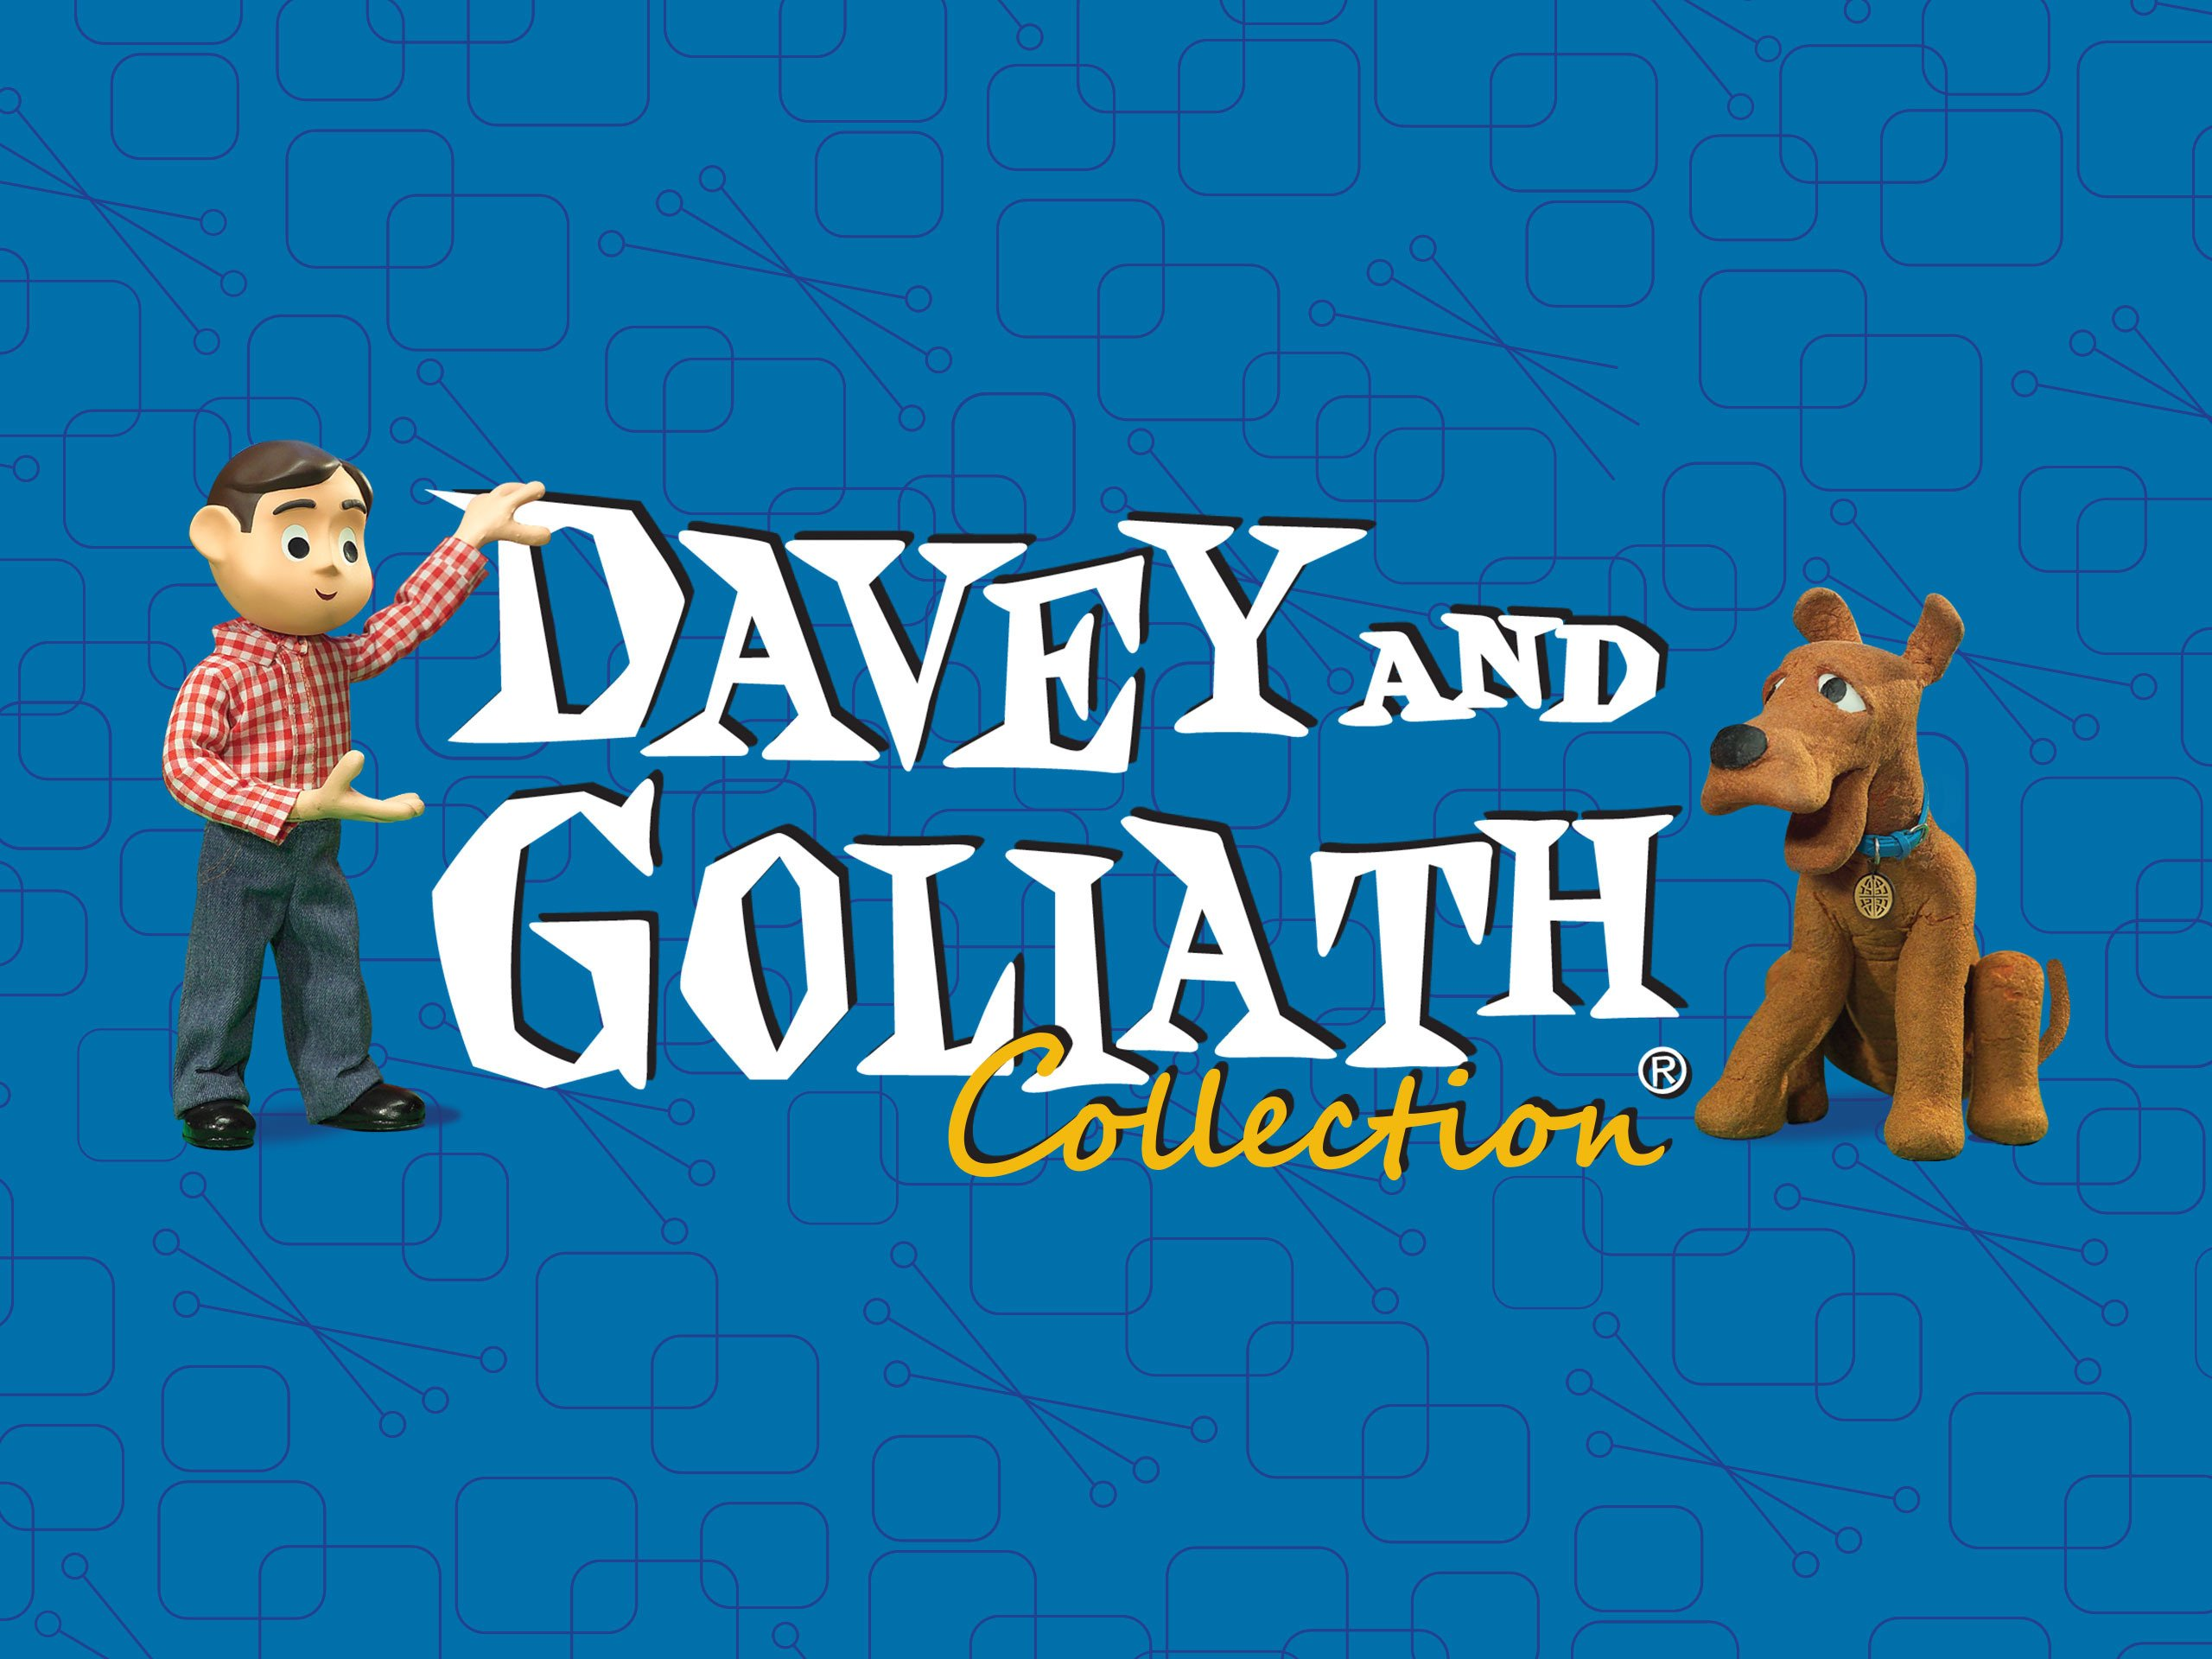 Davey & Goliath - Season 1